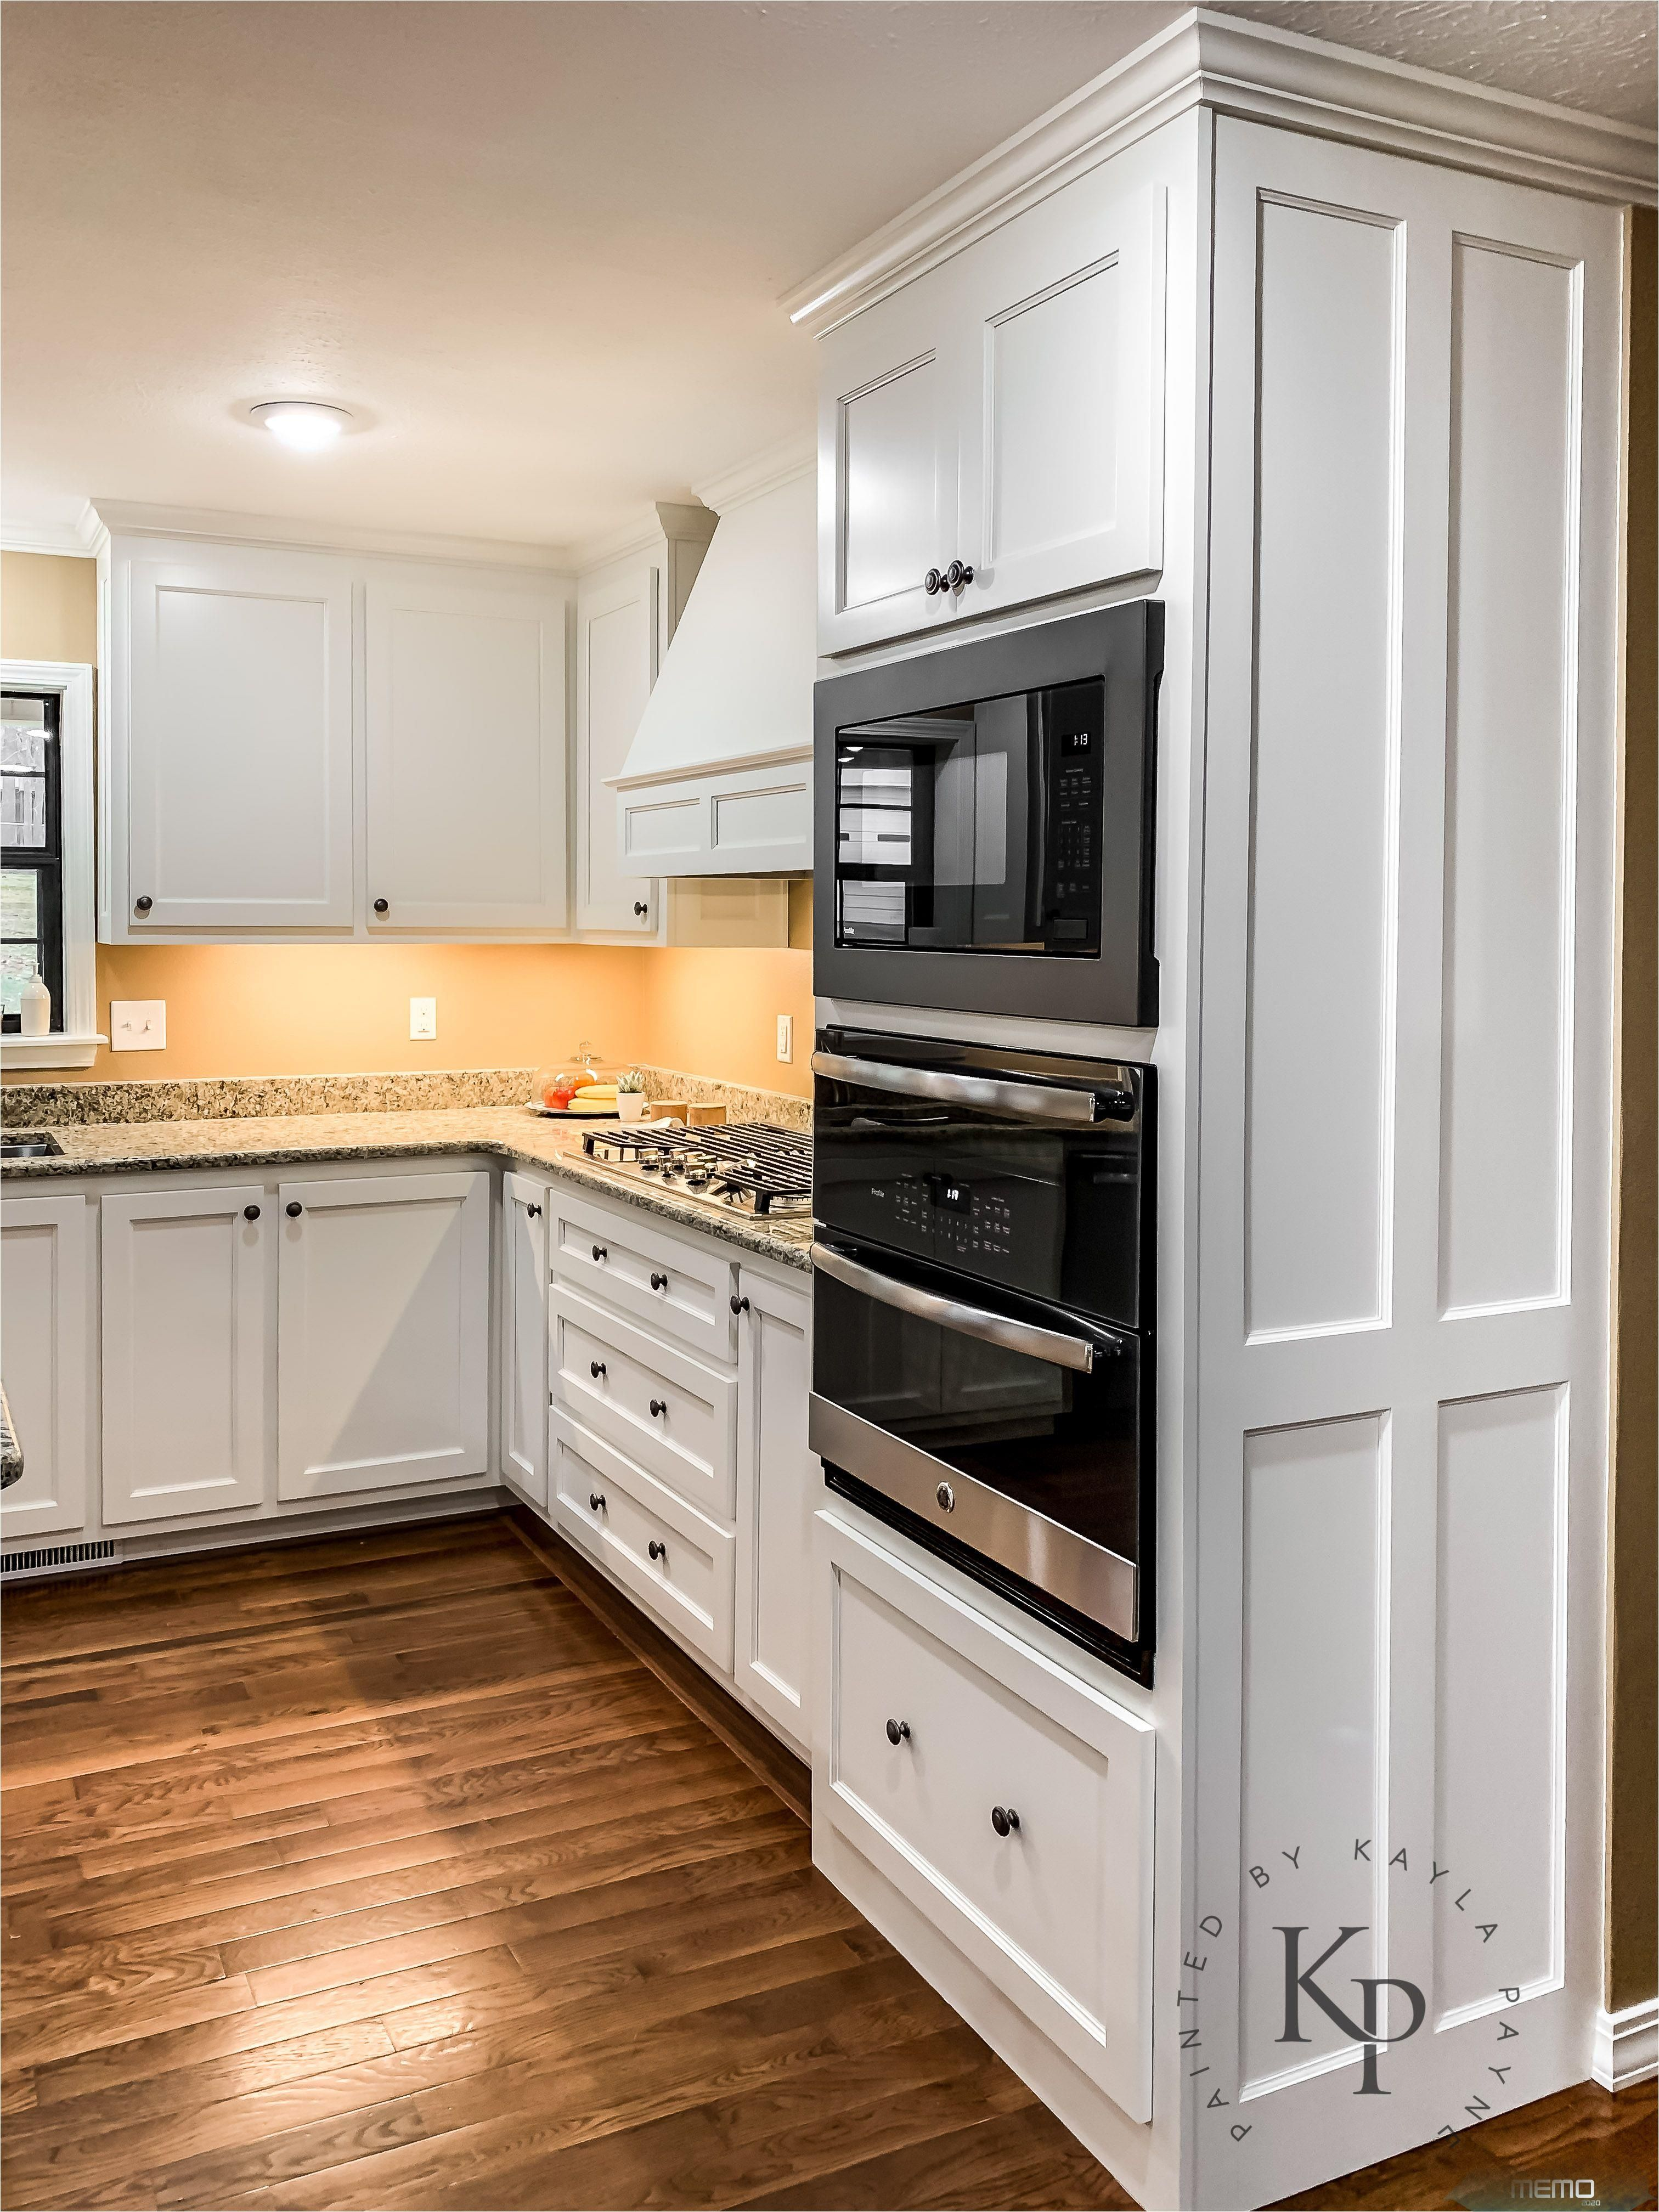 Mar 12 2019 Sherwin Williams Dover White On Kitchen Cabinets Is One Of The Best Cabinet Paint Colo In 2020 White Kitchen Layouts Kitchen Layout New Kitchen Cabinets